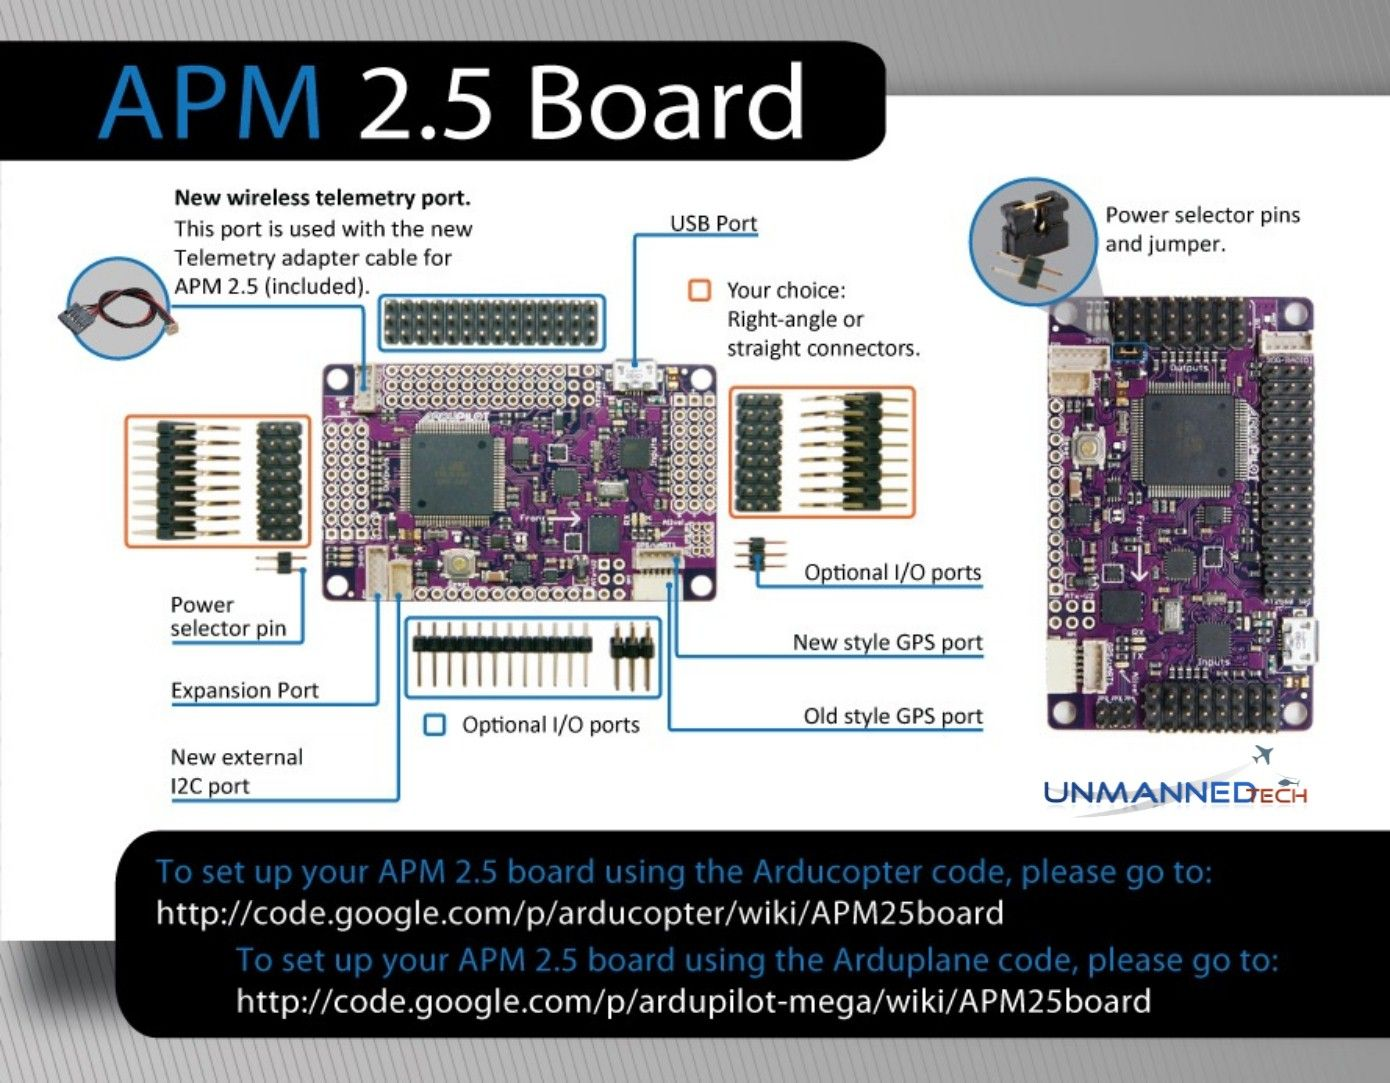 Pin Od Marek Krajewski Na Dron W 2018 Pinterest Open Source Diy Modmypi Pirack Circuit Rack Expansion Board Ardupilot Mega 25 Kits The Ultimate Autopilot Http